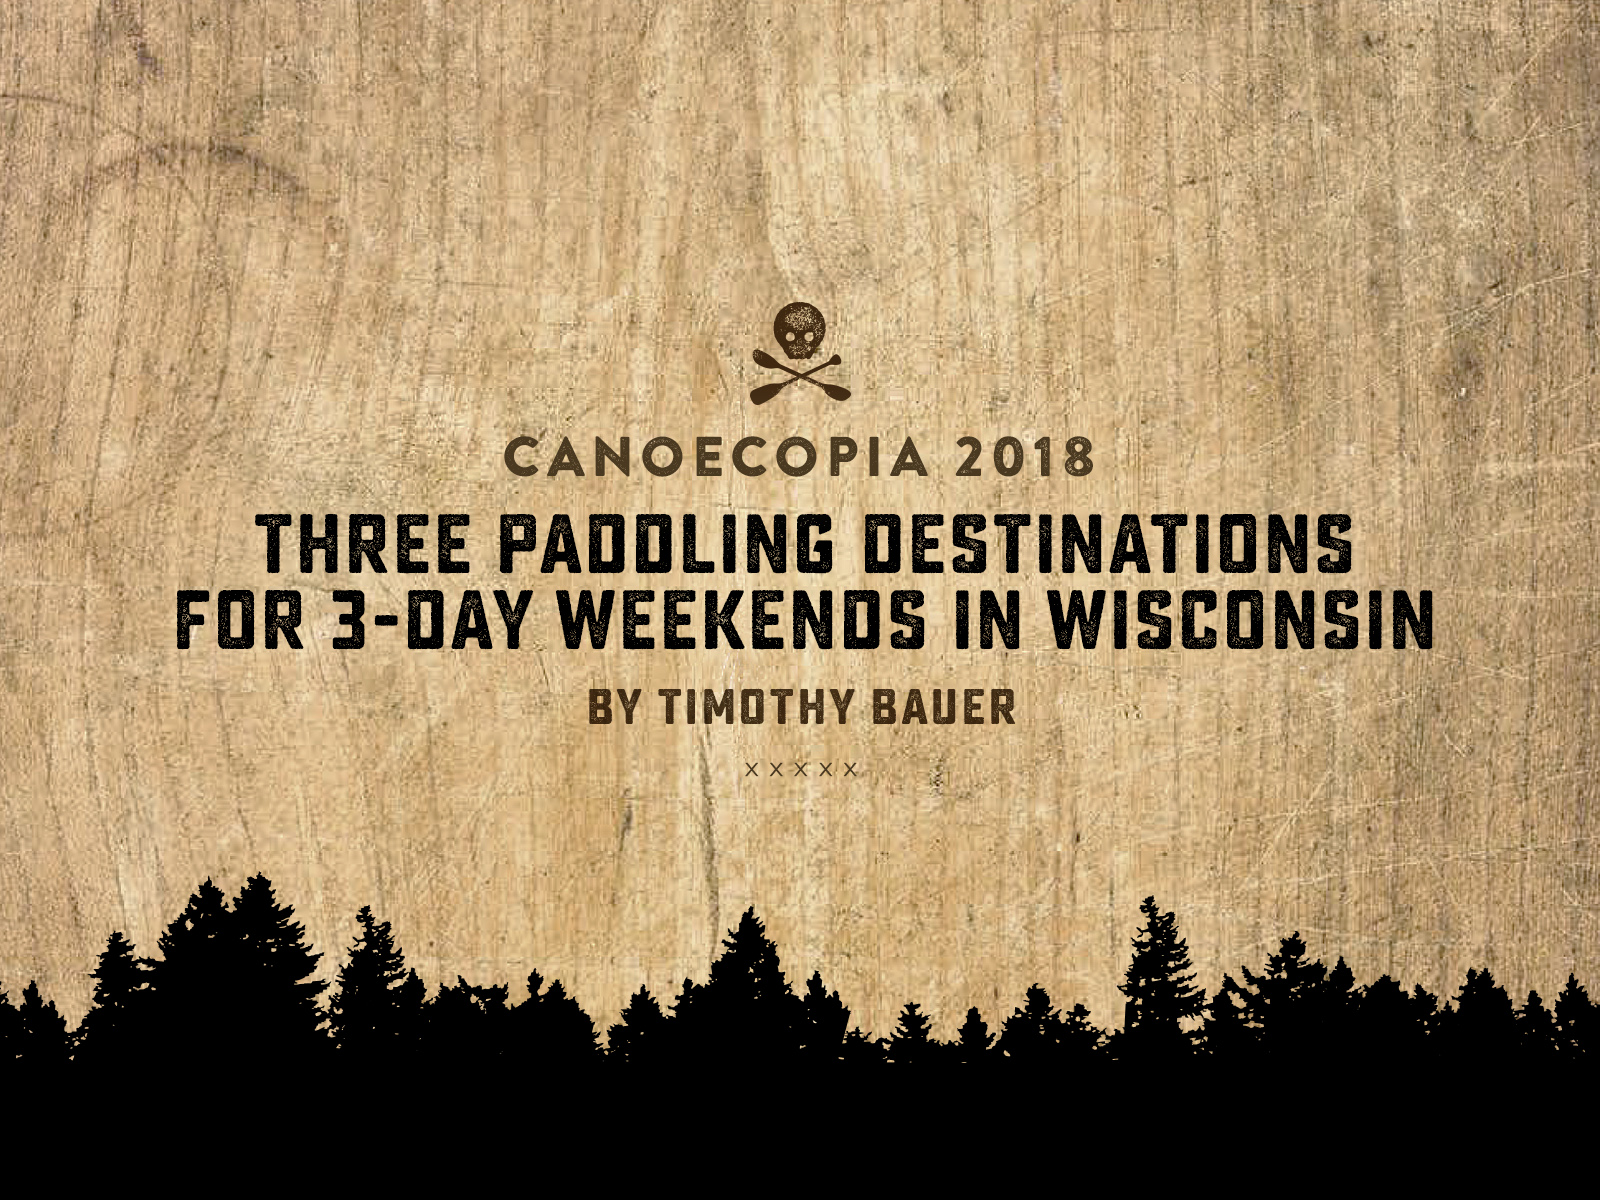 Timothy Bauer at Canoecopia 2018